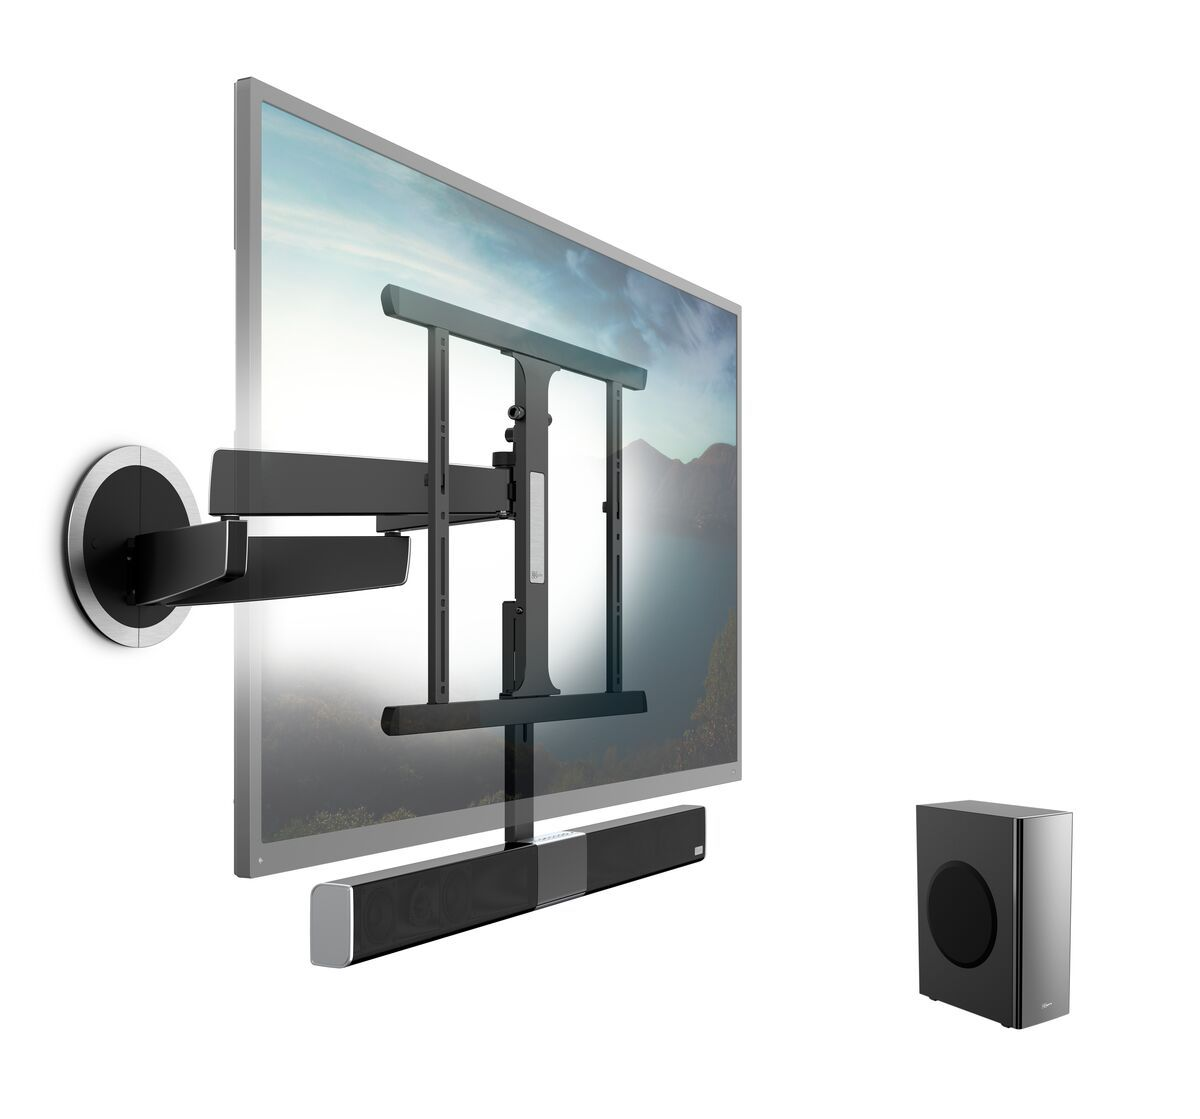 Vogel's SoundMount (NEXT 8365 GB) Full-Motion TV Wall Mount with Integrated Sound 40 65 30 Motion (up to 120°) Product